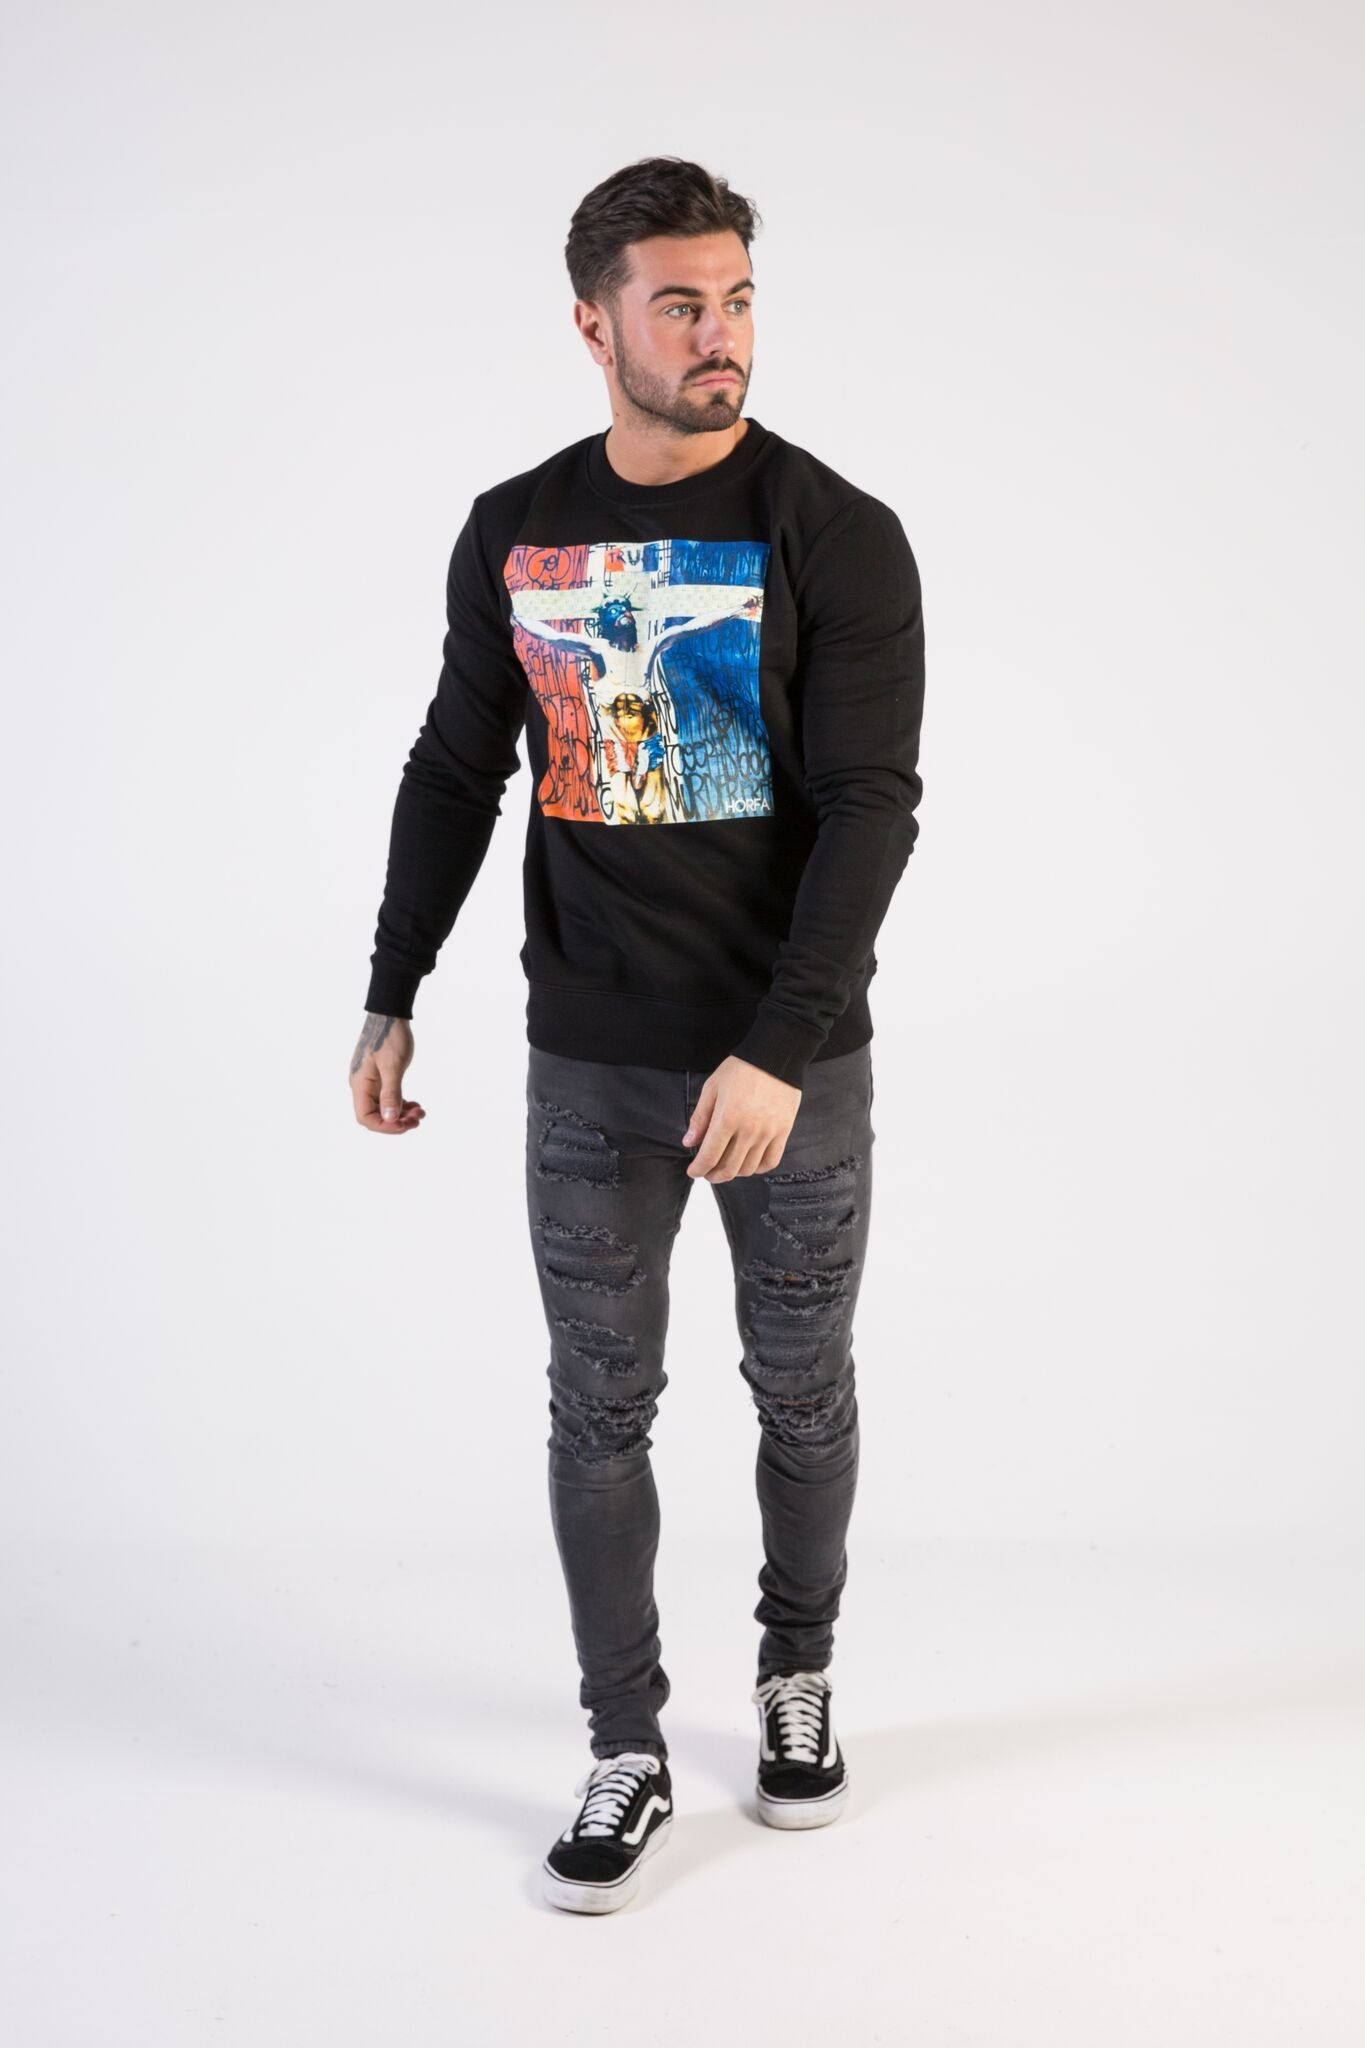 F**K Religion Sweatshirt - HÖRFA is a men's global fashion brand that provides products such as Fashionable Watches, Wallets, Sunglasses, Belts, Beard and Male Grooming Products